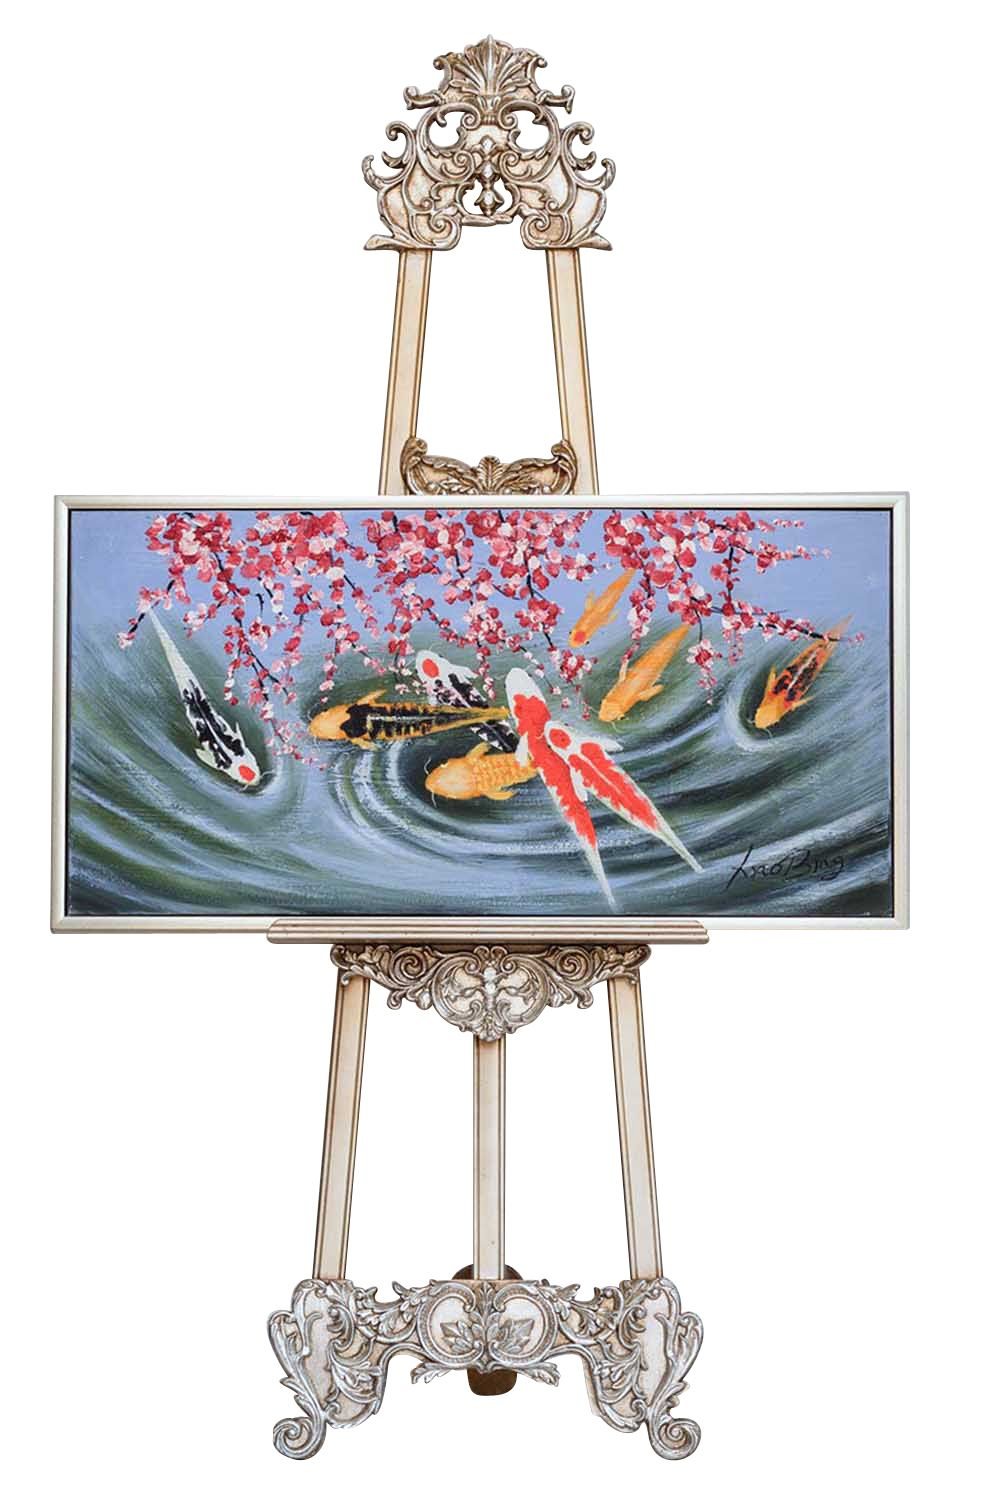 Oil painting fish koi pond aquarium koi carp painting for Fische in teich